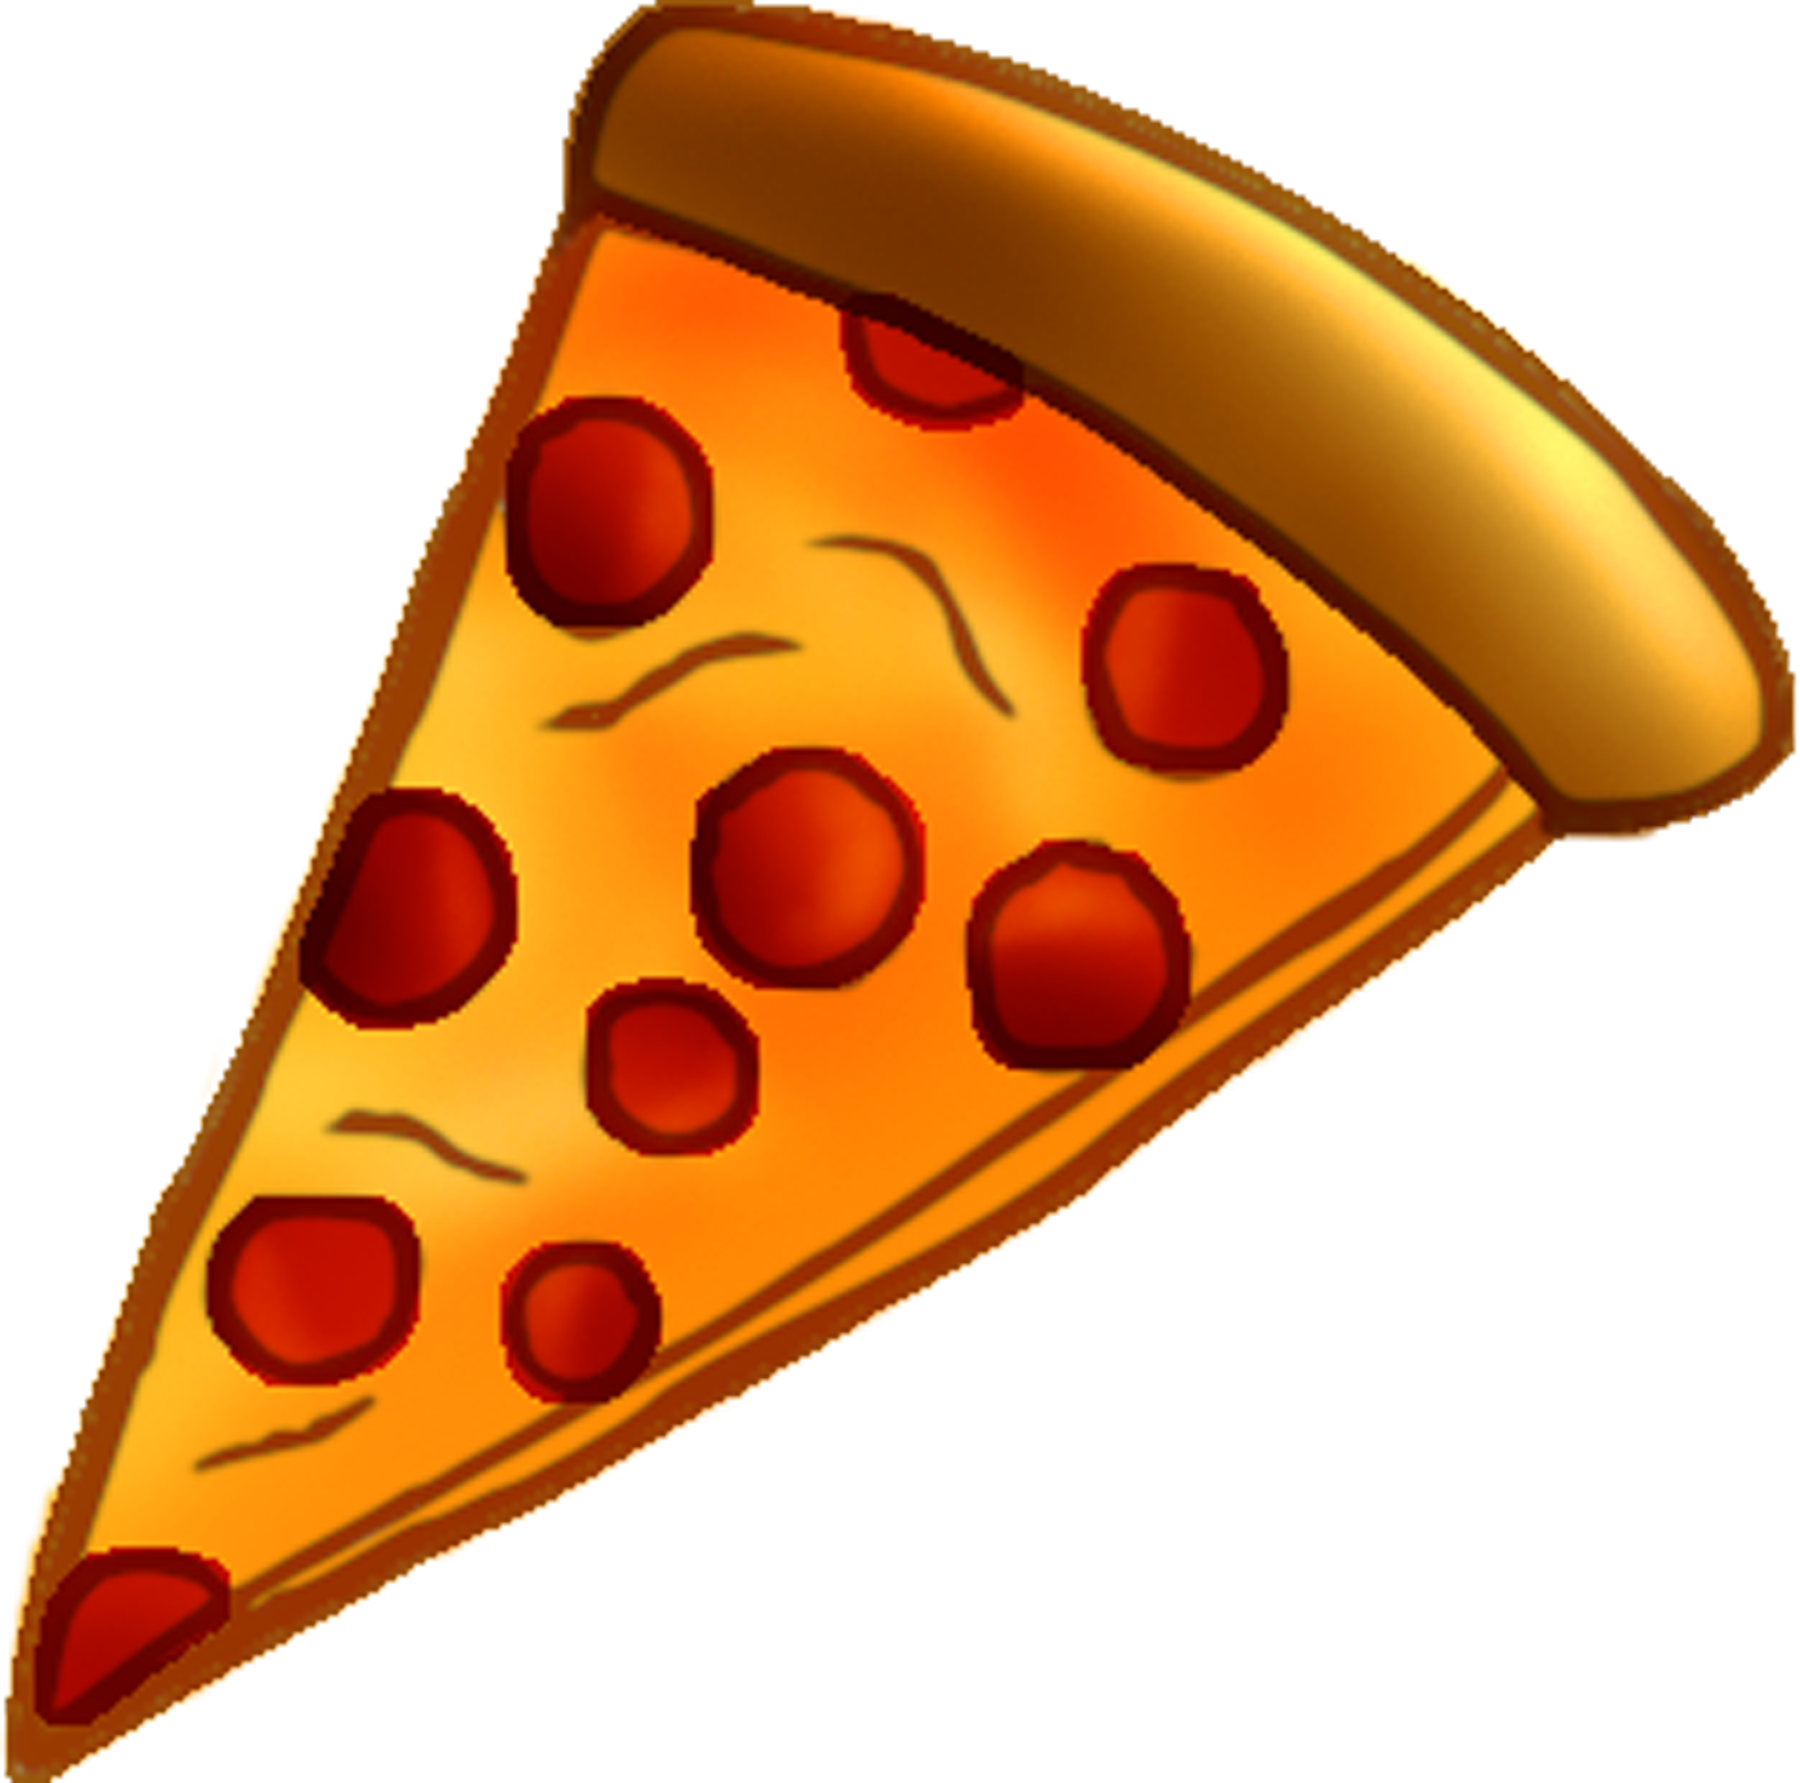 pizza clipart sliced pizza